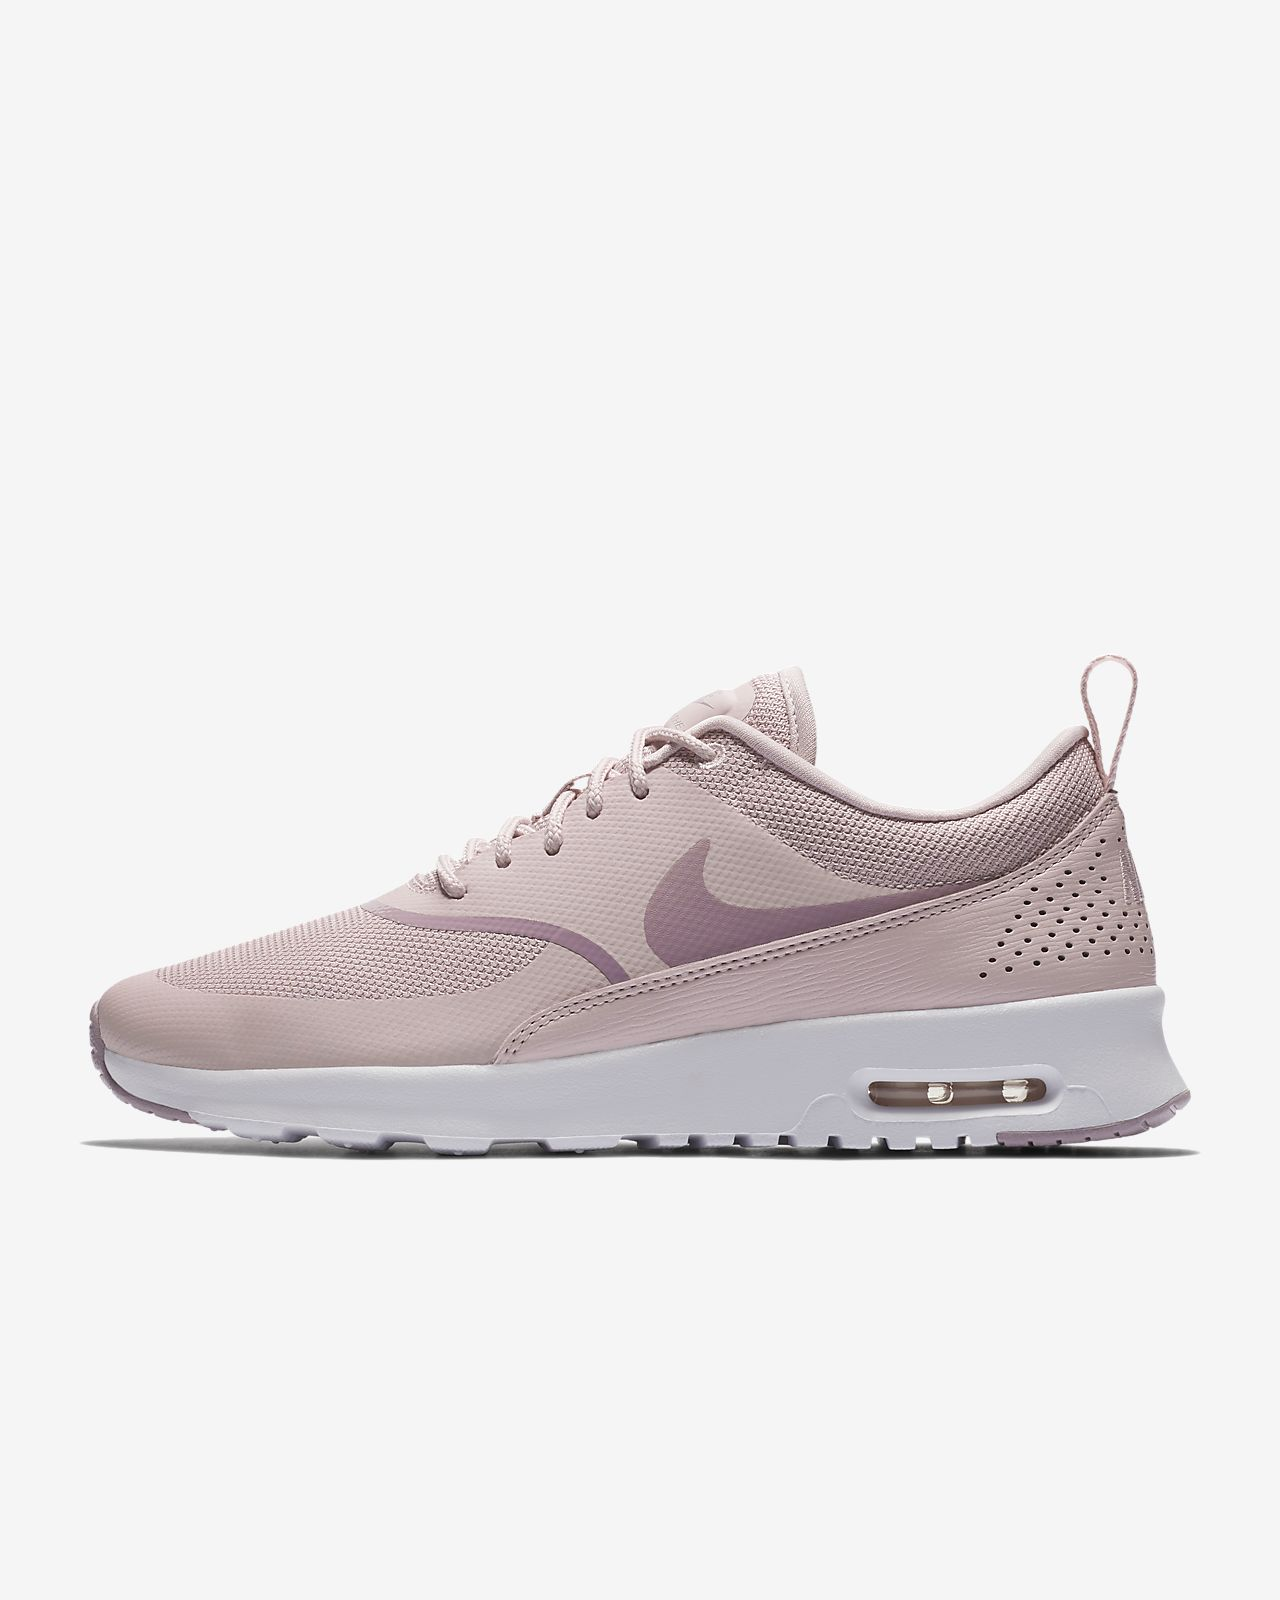 Thea Air Chaussure Max Glitter Pour Nike Femme ul13TFJKc5